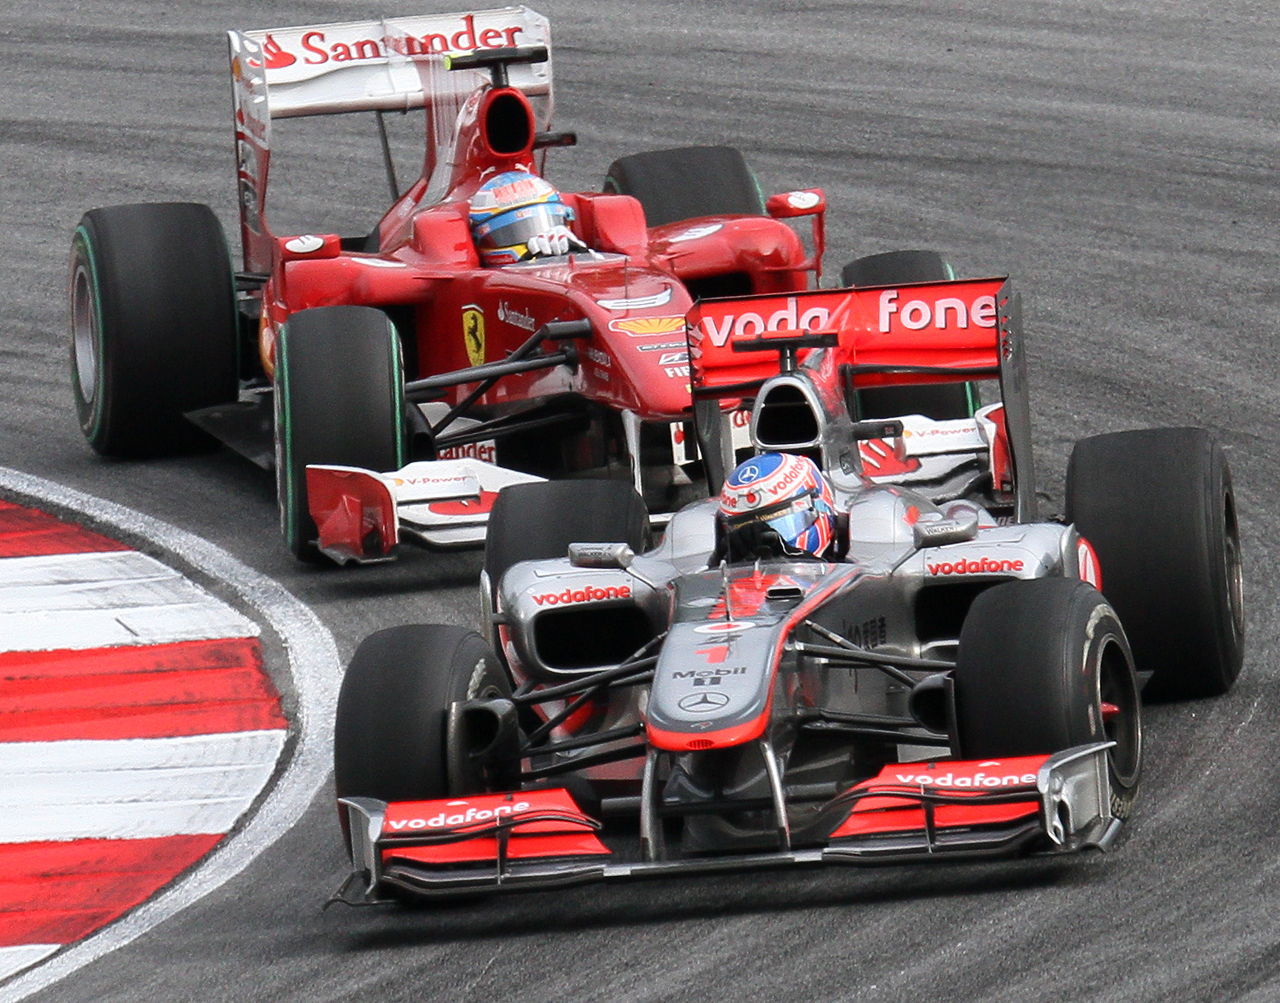 [Imagen: Jenson_Button_and_Fernando_Alonso_2010_Malaysia.jpg]